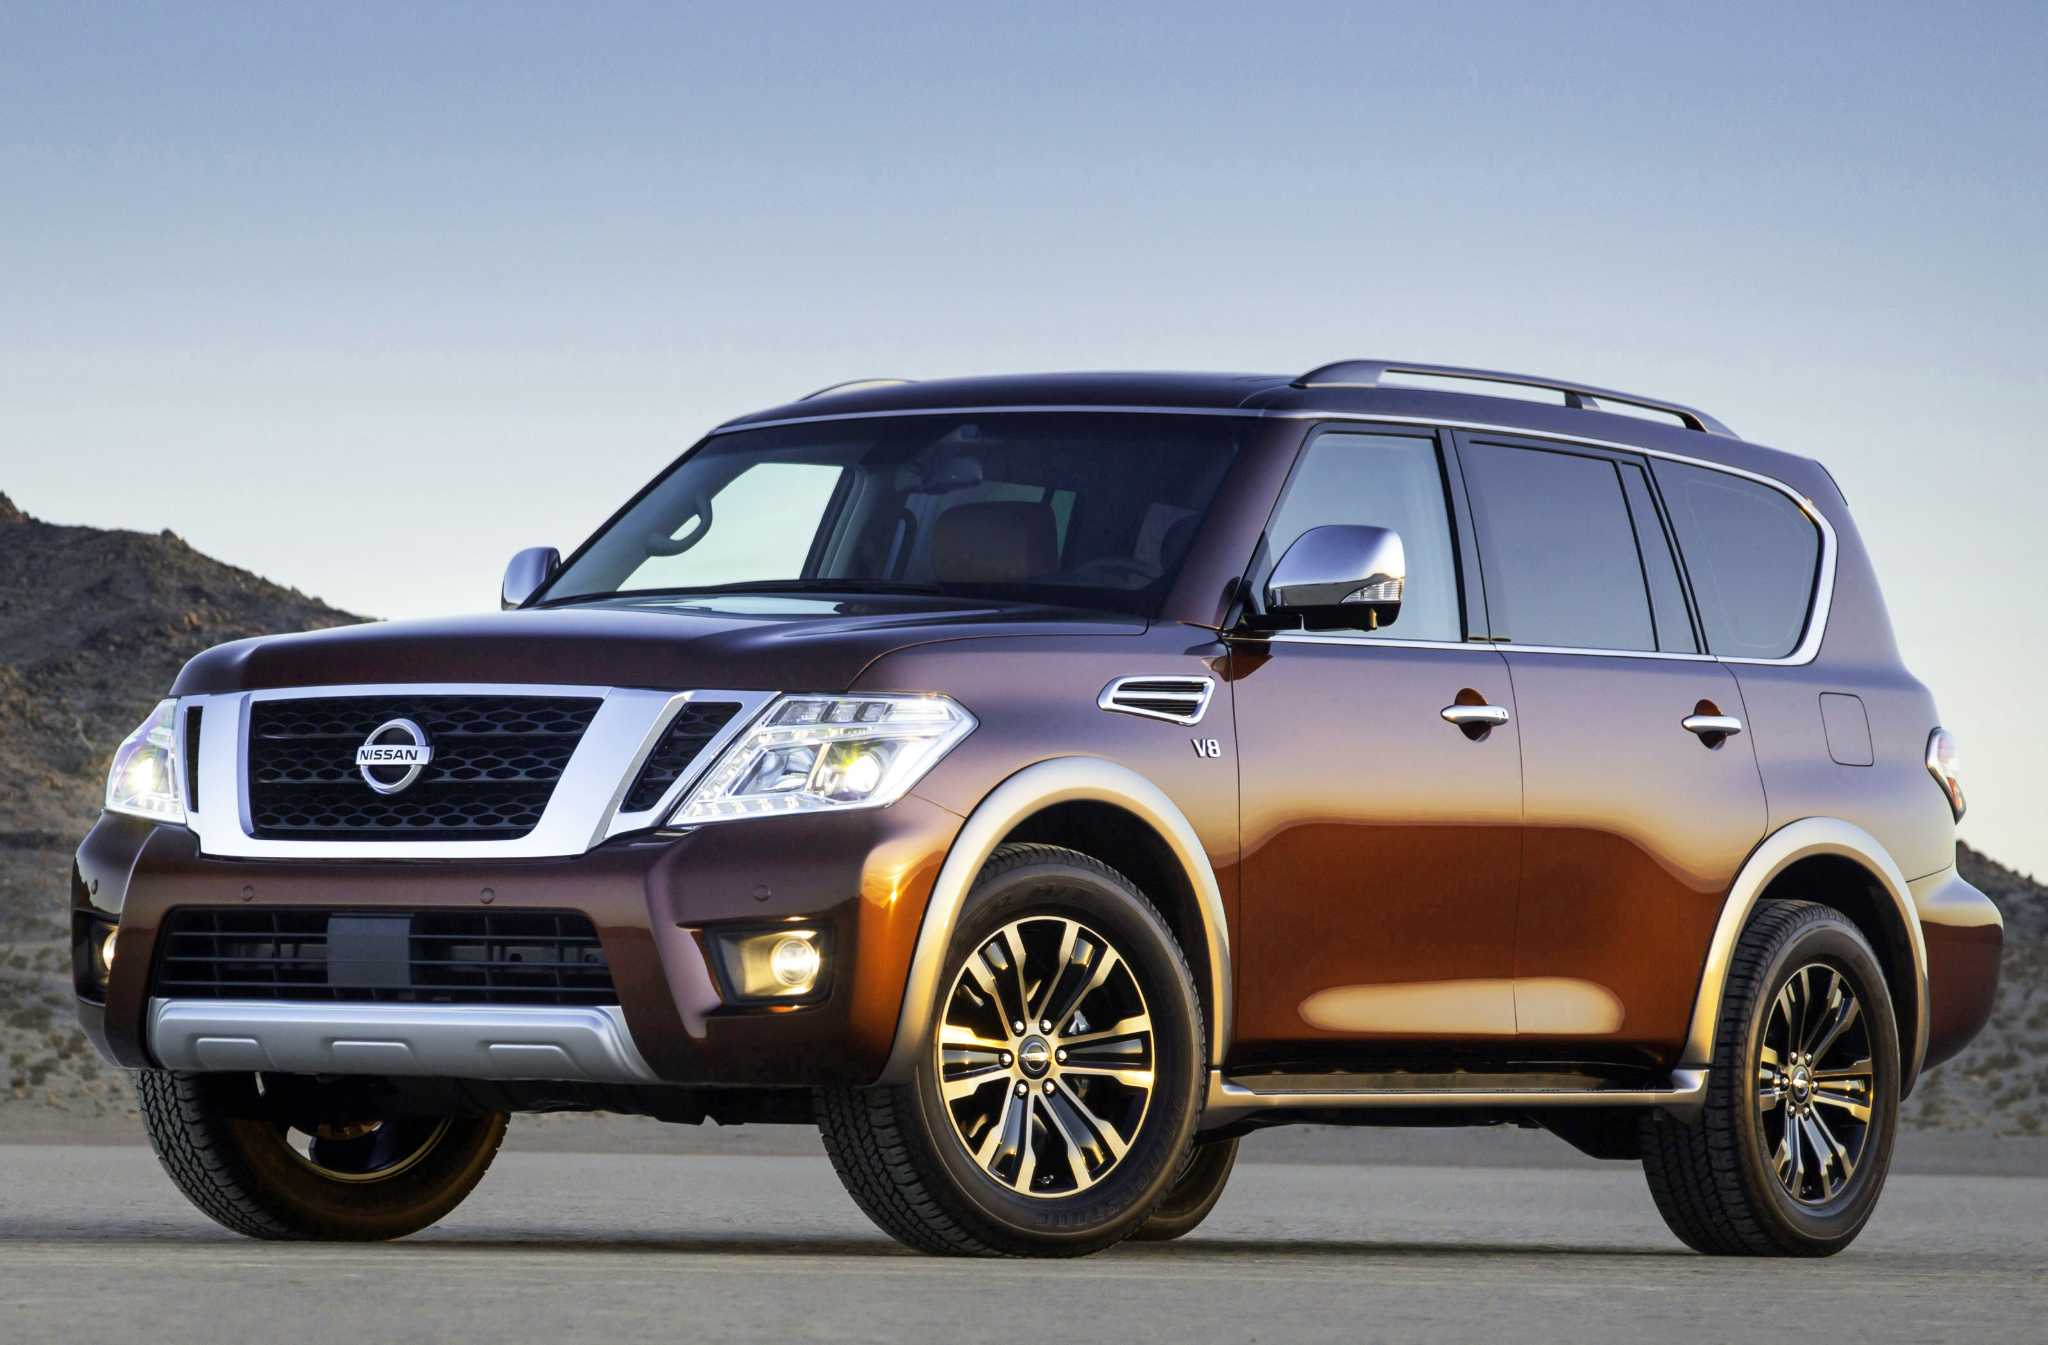 Nissan Armada has room for up to eight, starts at $45,600